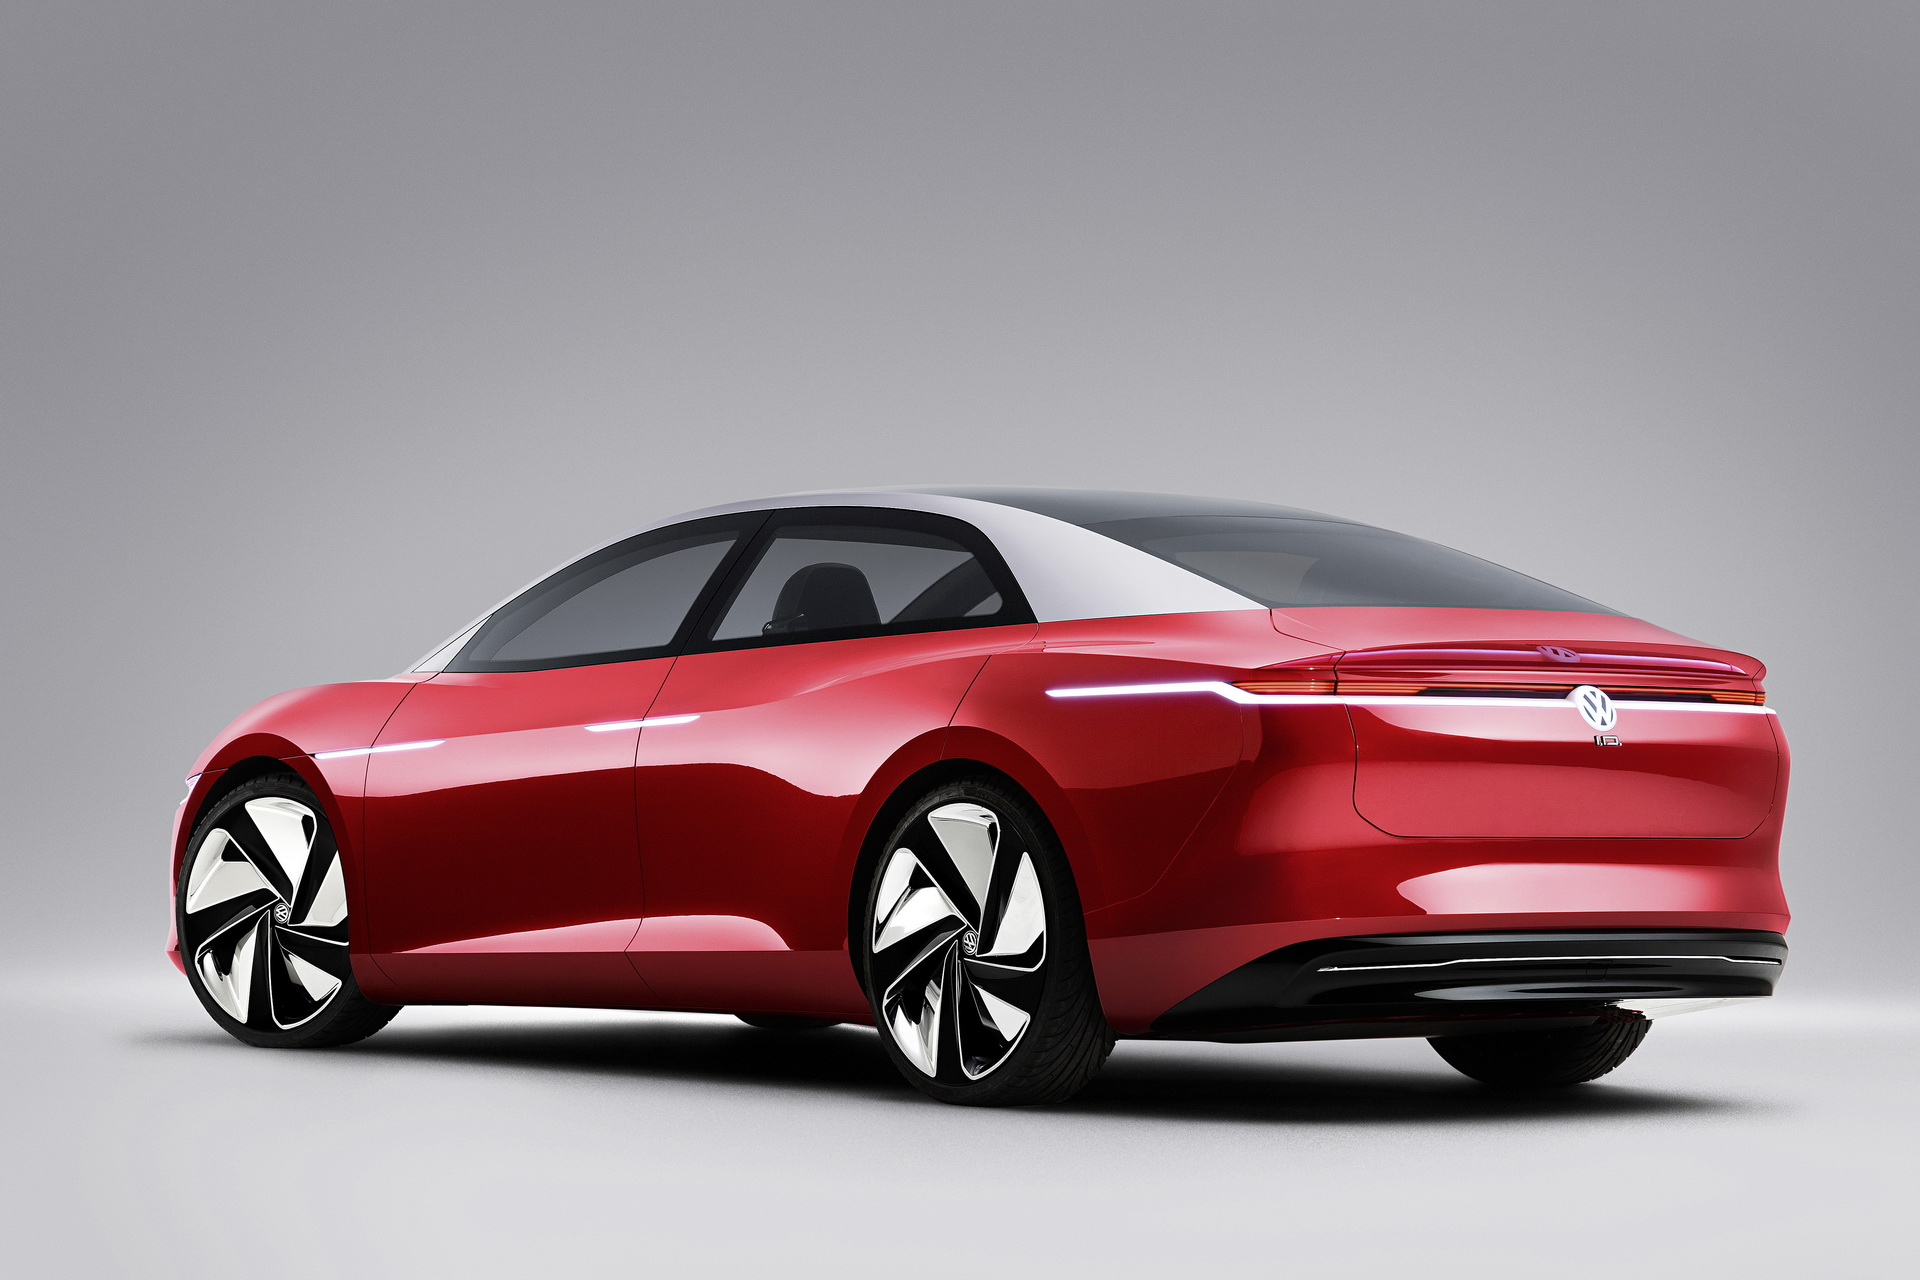 Vw Id6 Coming 2023 With 435 Mile Range 3